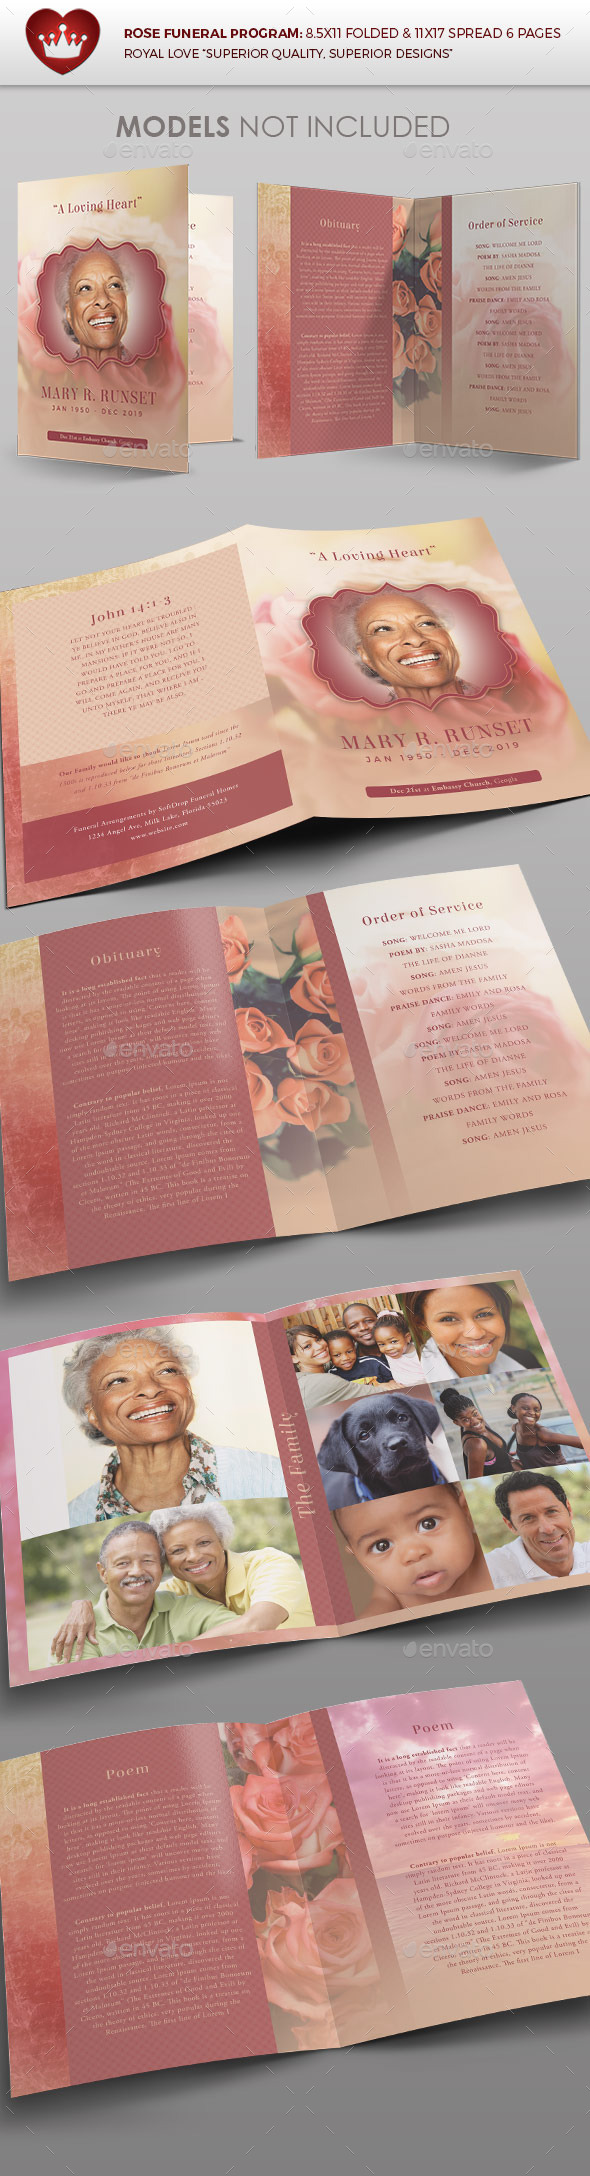 Rose Funeral Program Template - Brochures Print Templates